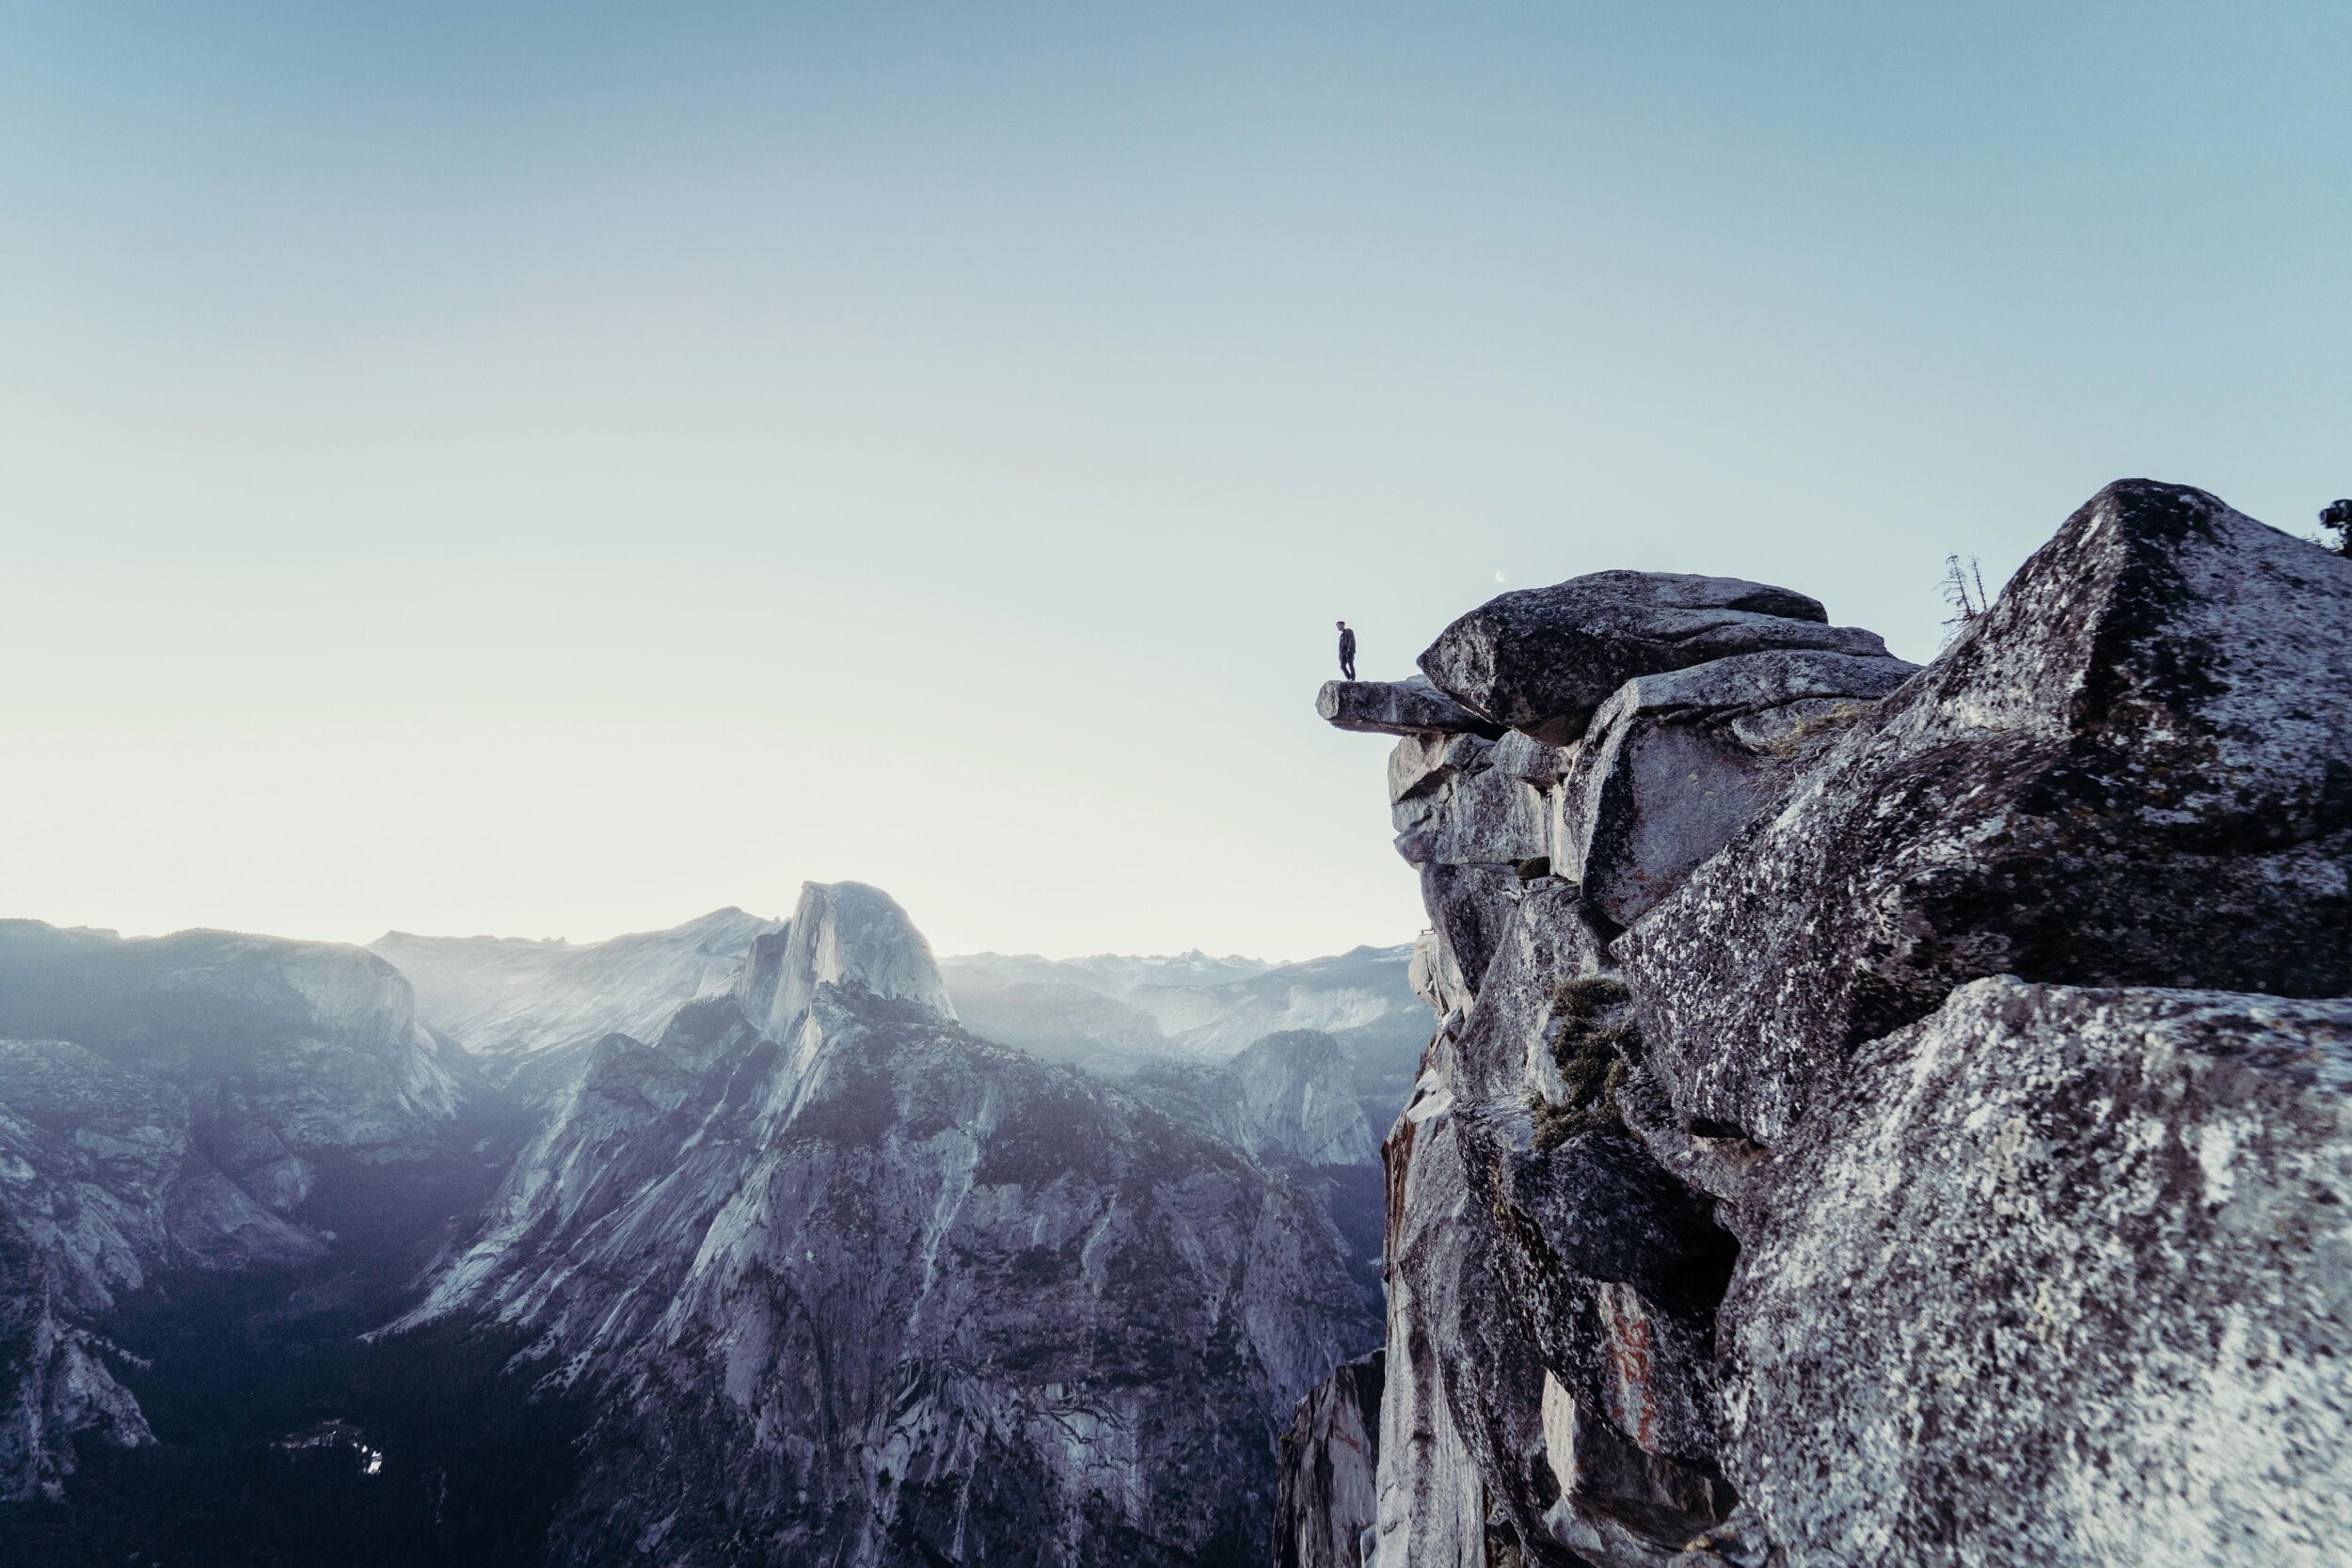 view of one person overlooking a canyon